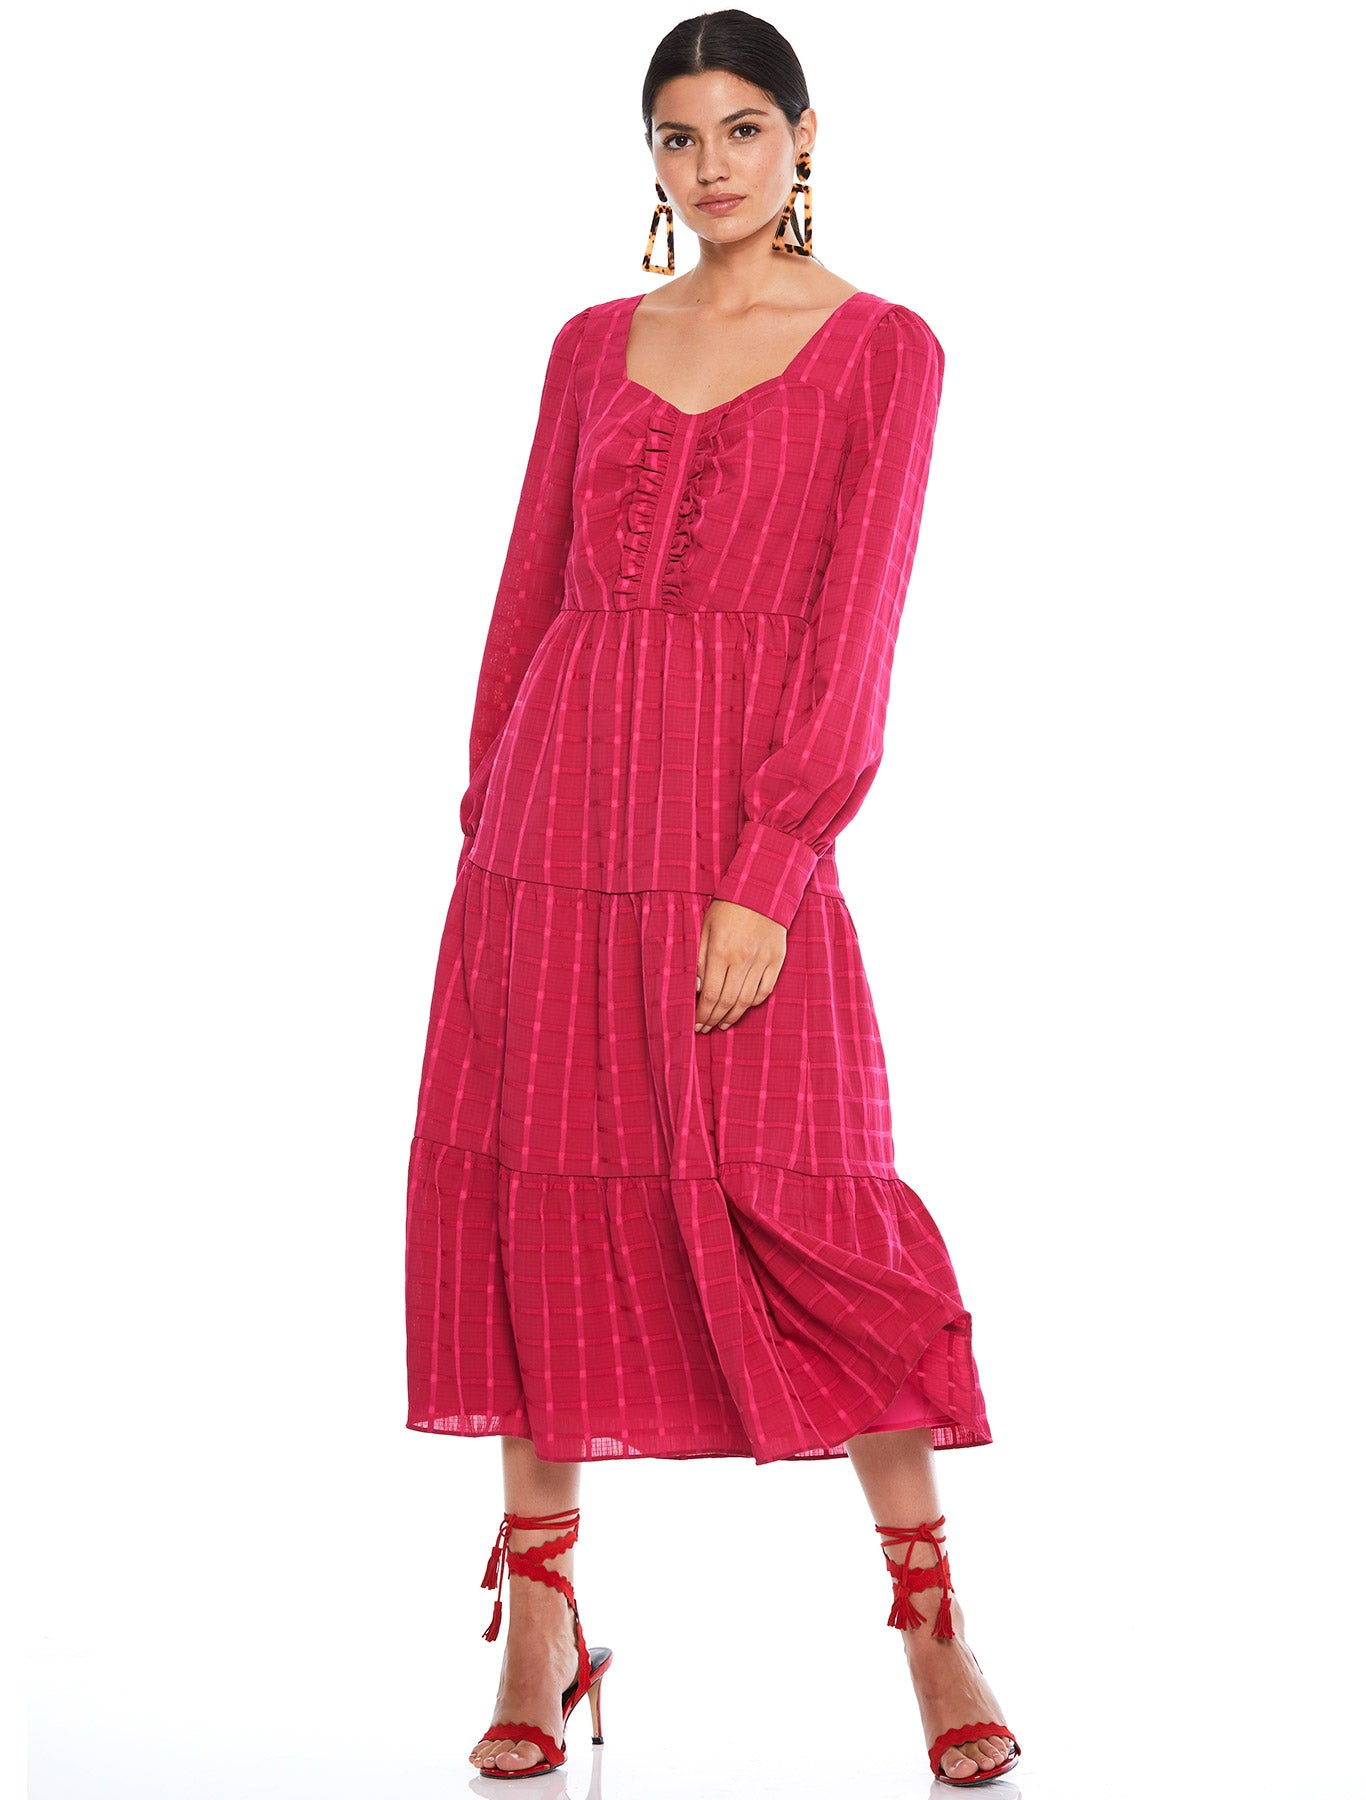 FLAMENCO MIDI DRESS